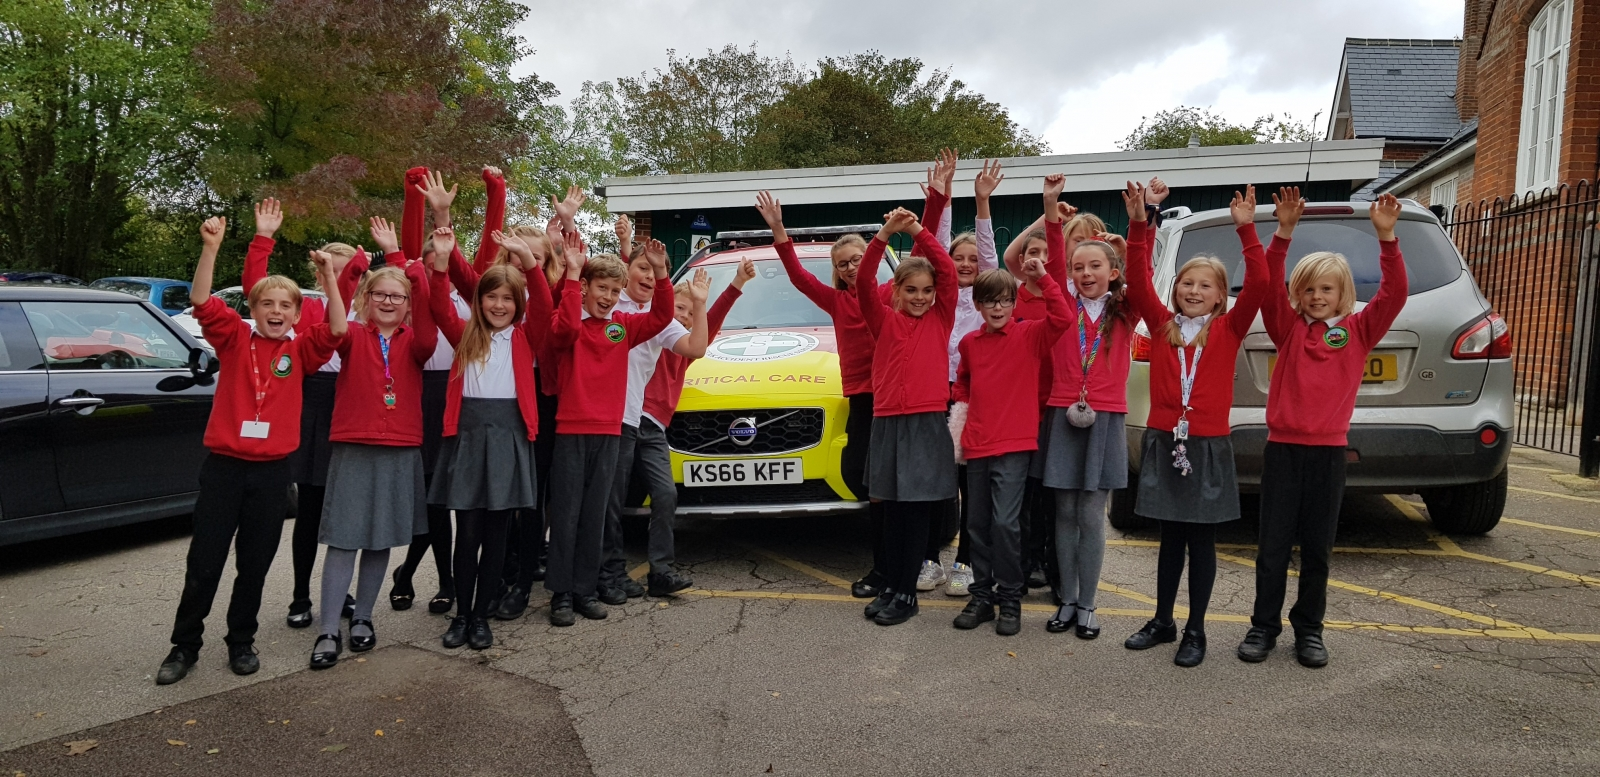 Road Safety Talk given to pupils at Rattlesden Primary